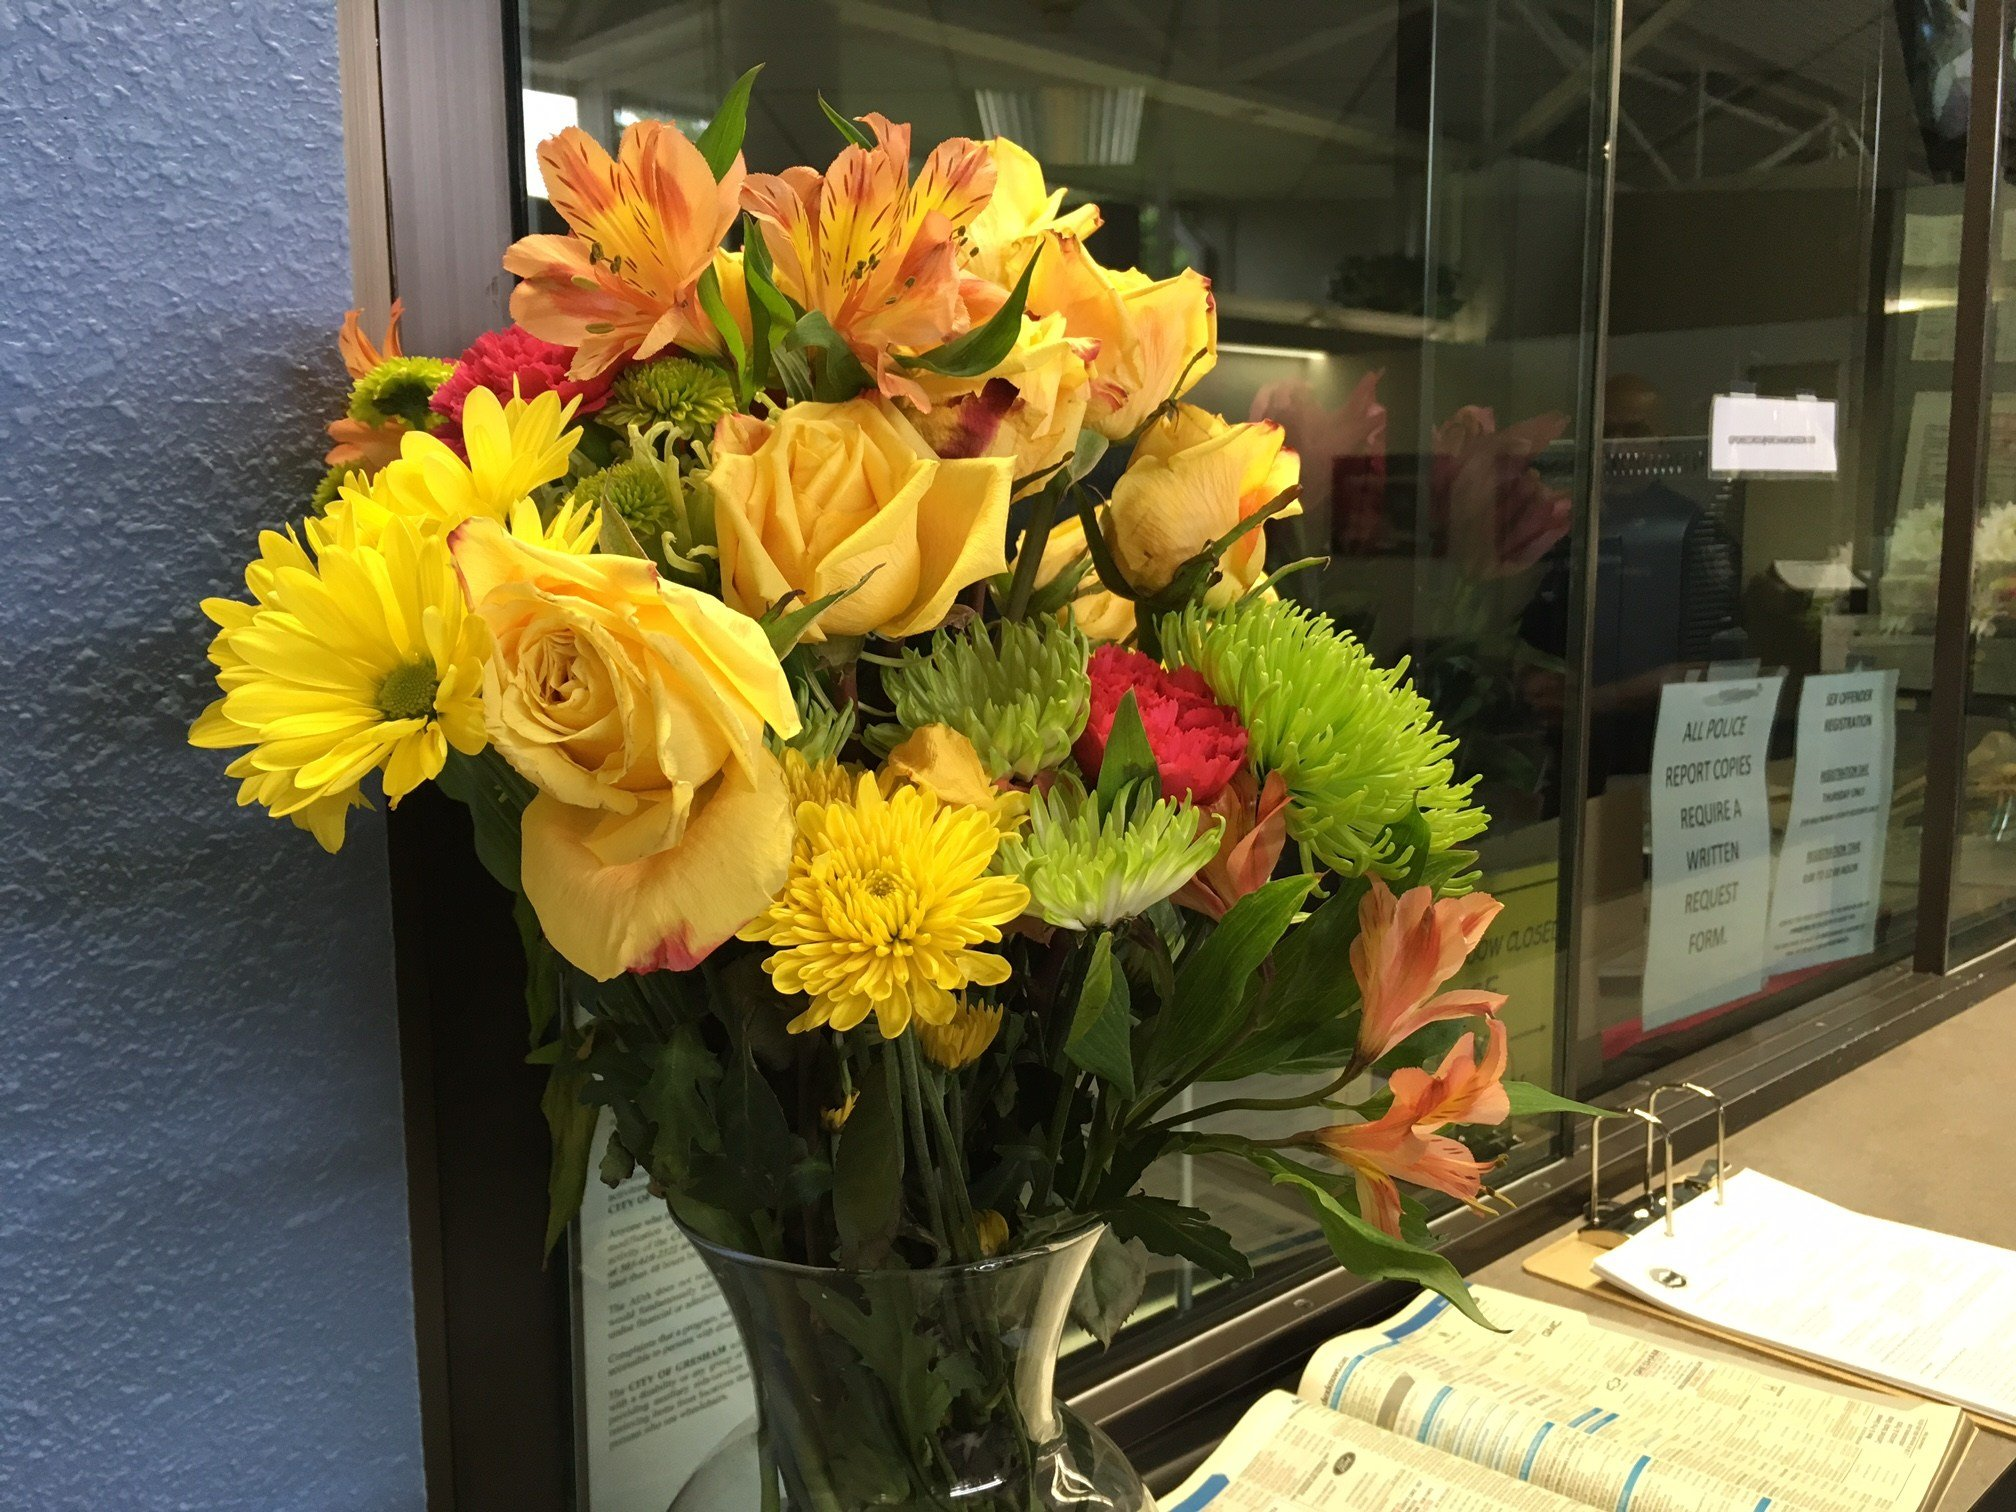 A bouquet of flowers brought in to Gresham PD. (KPTV)